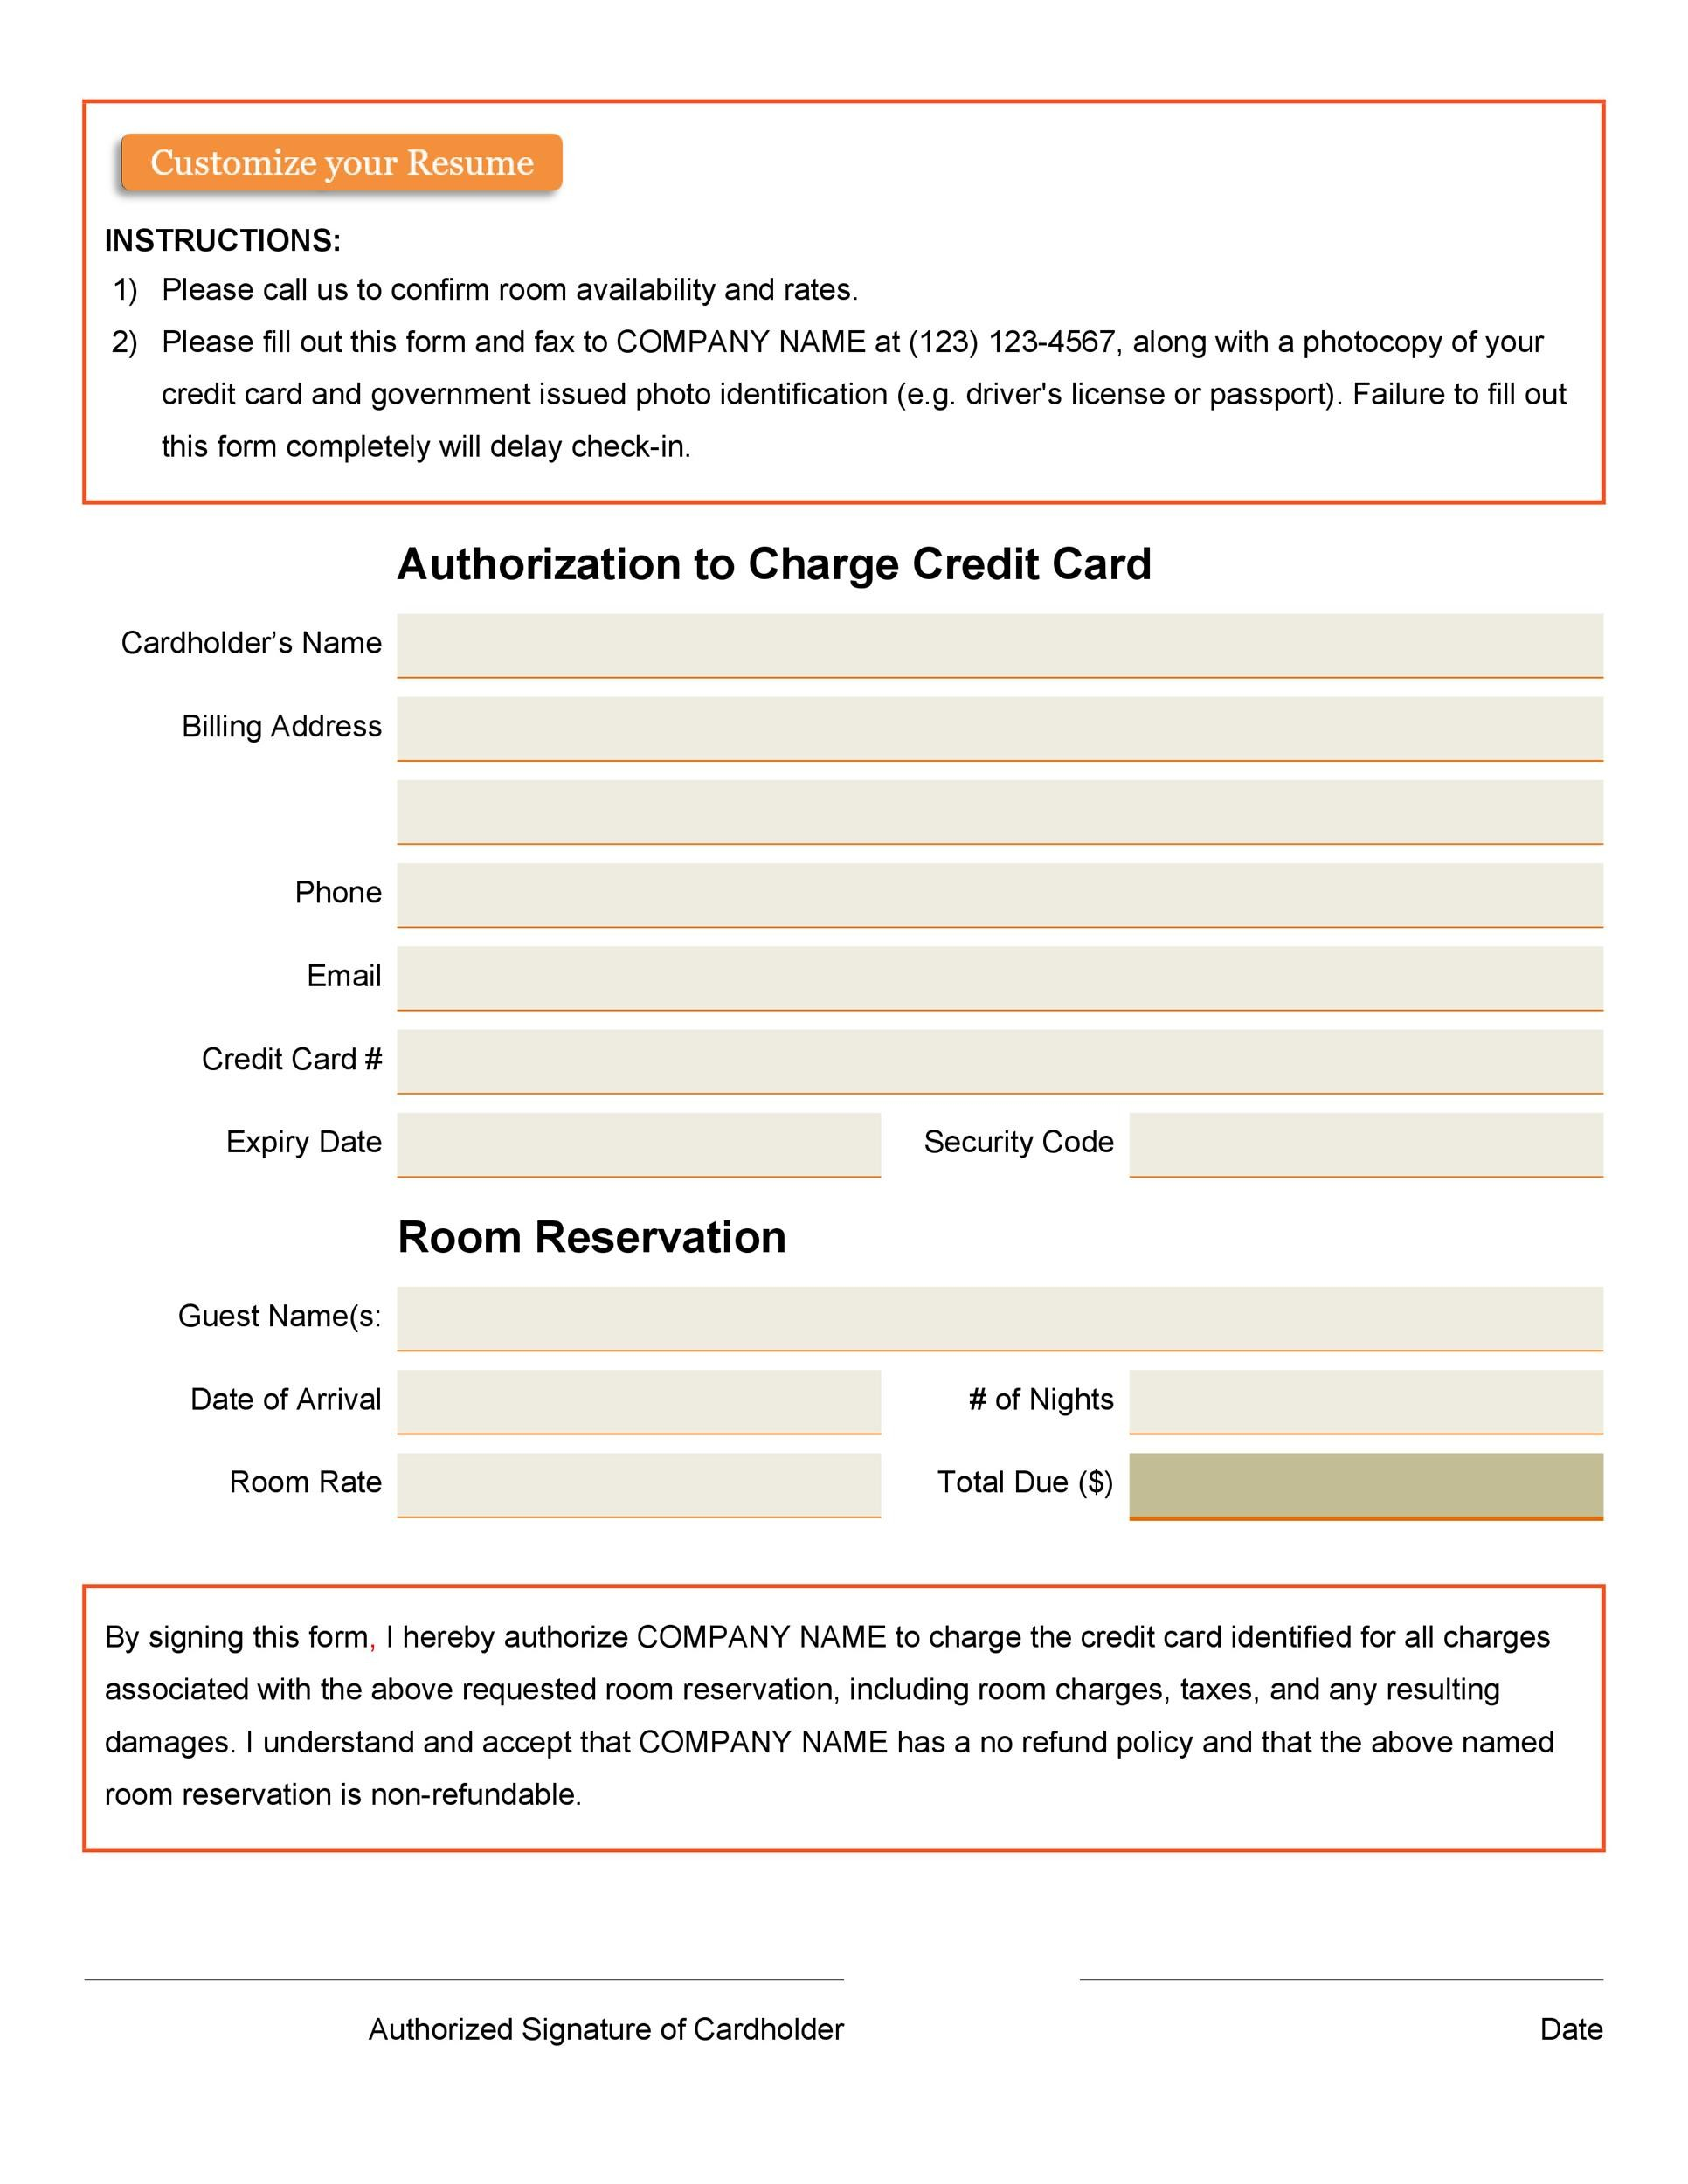 Credit Card Authorization Forms Templates ReadytoUse - Company credit card policy template